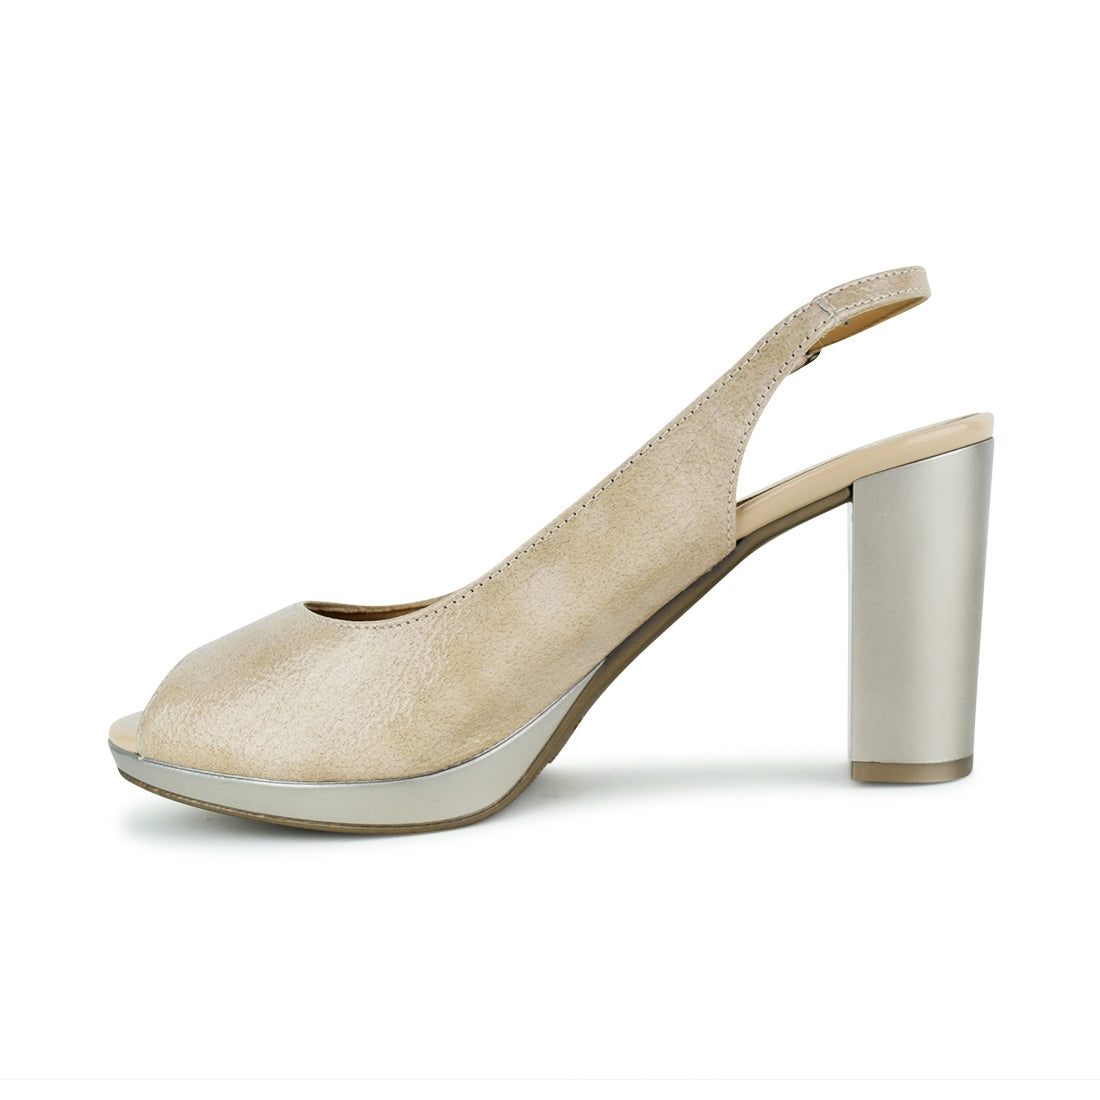 DARMA - Desiree Nude Patent